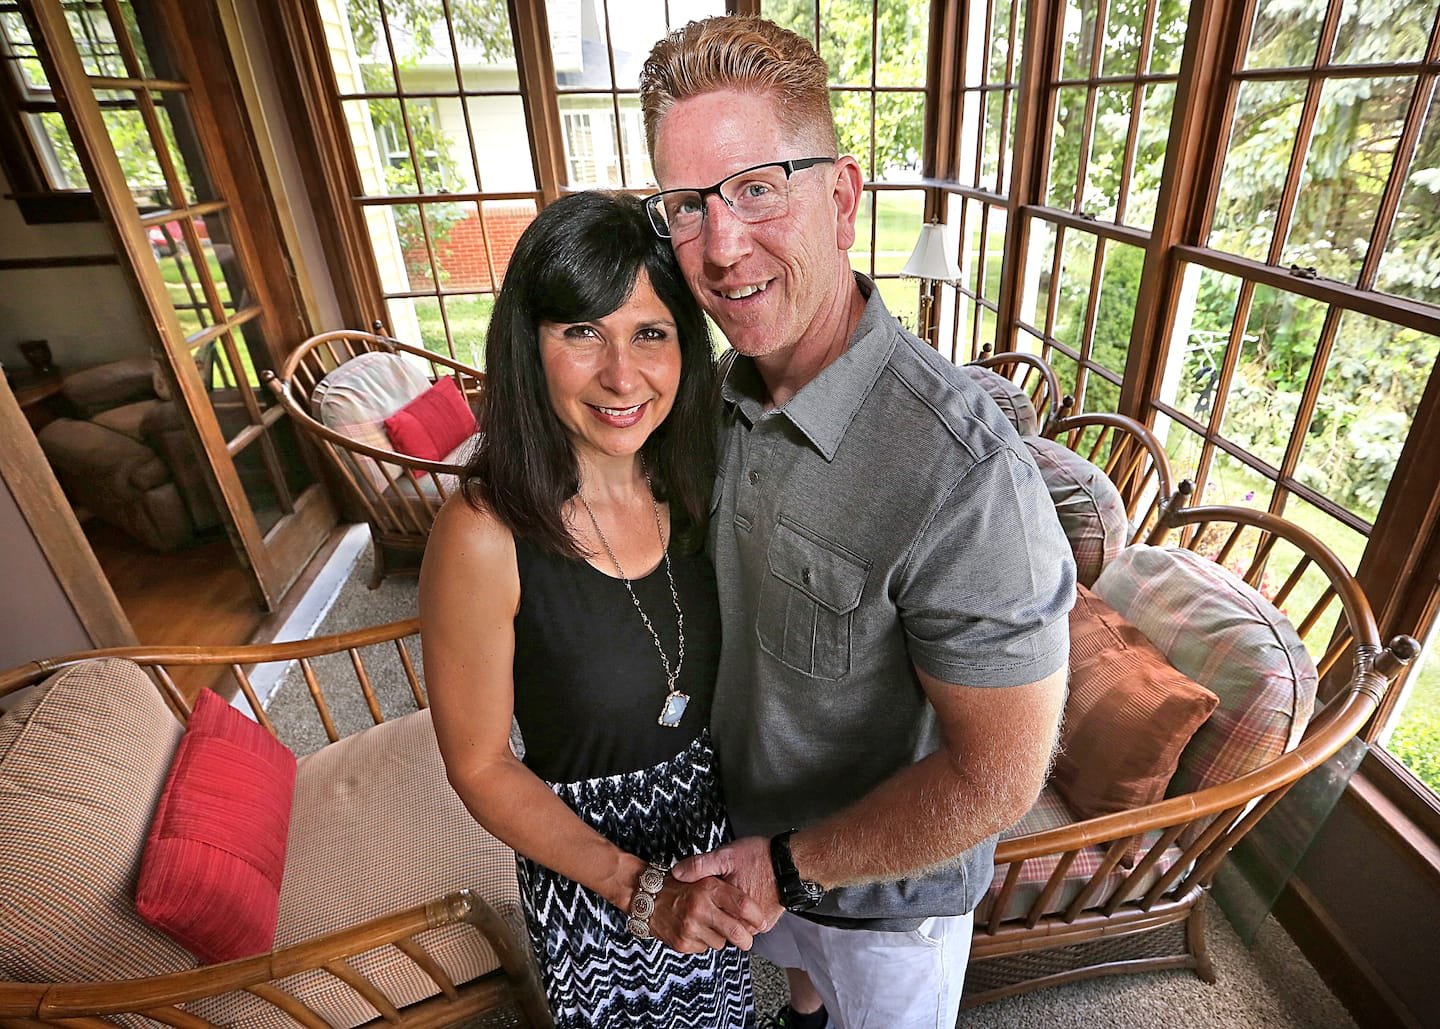 Life long Beech Grove residence, Christa and Phil Smiley have lived in their current home for the past three years. The classic two story home was built in 1910.